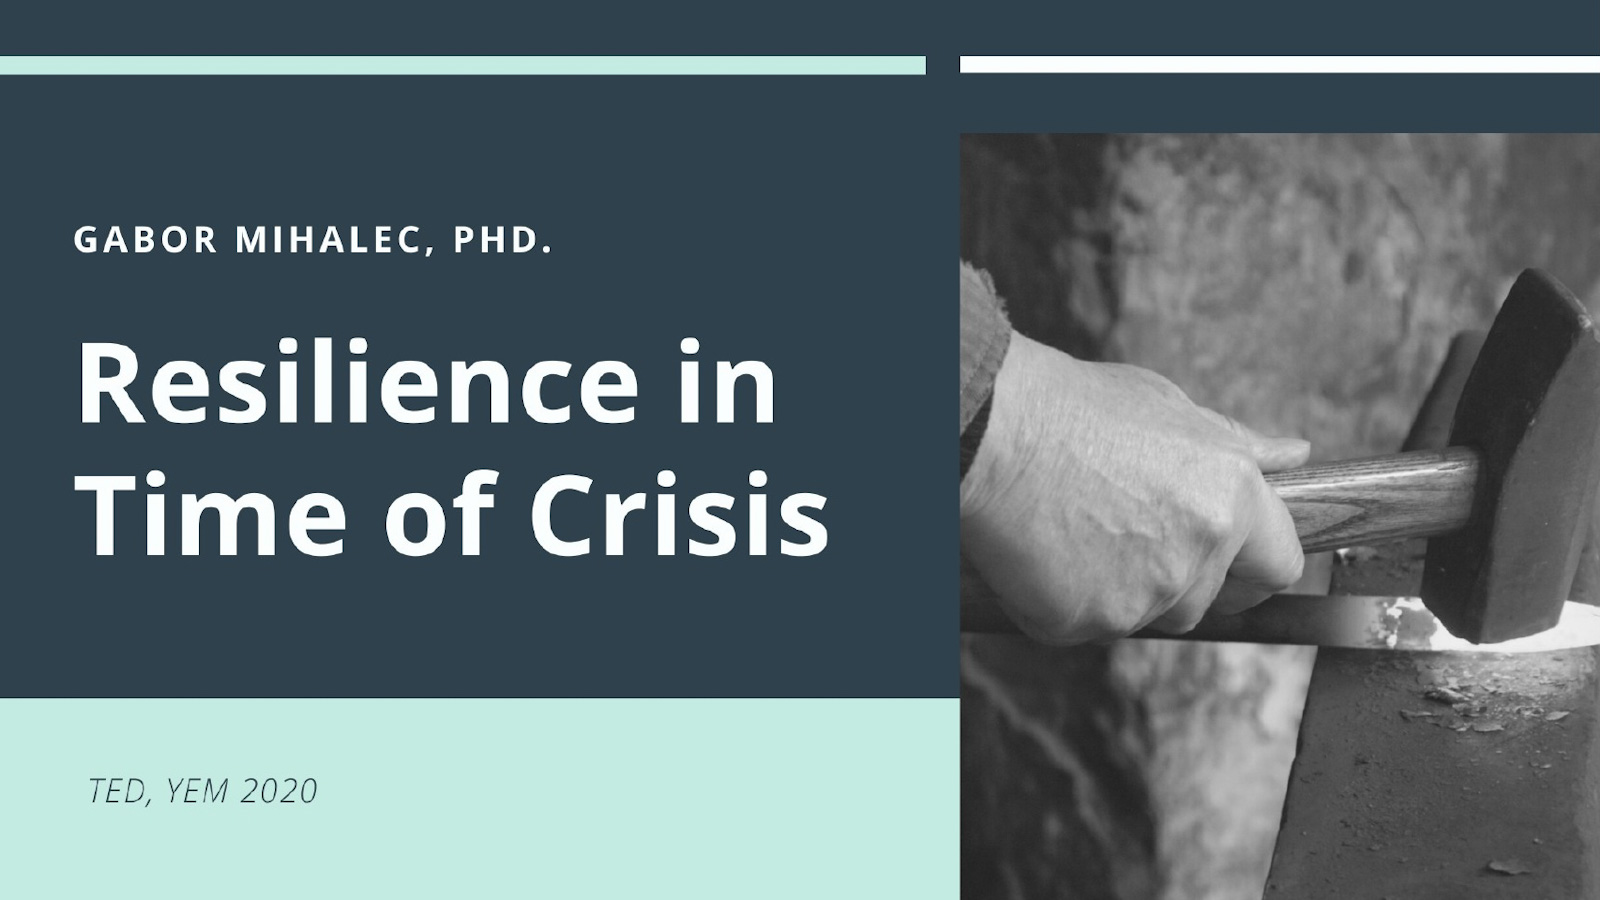 Resilience in time of crisis presentation